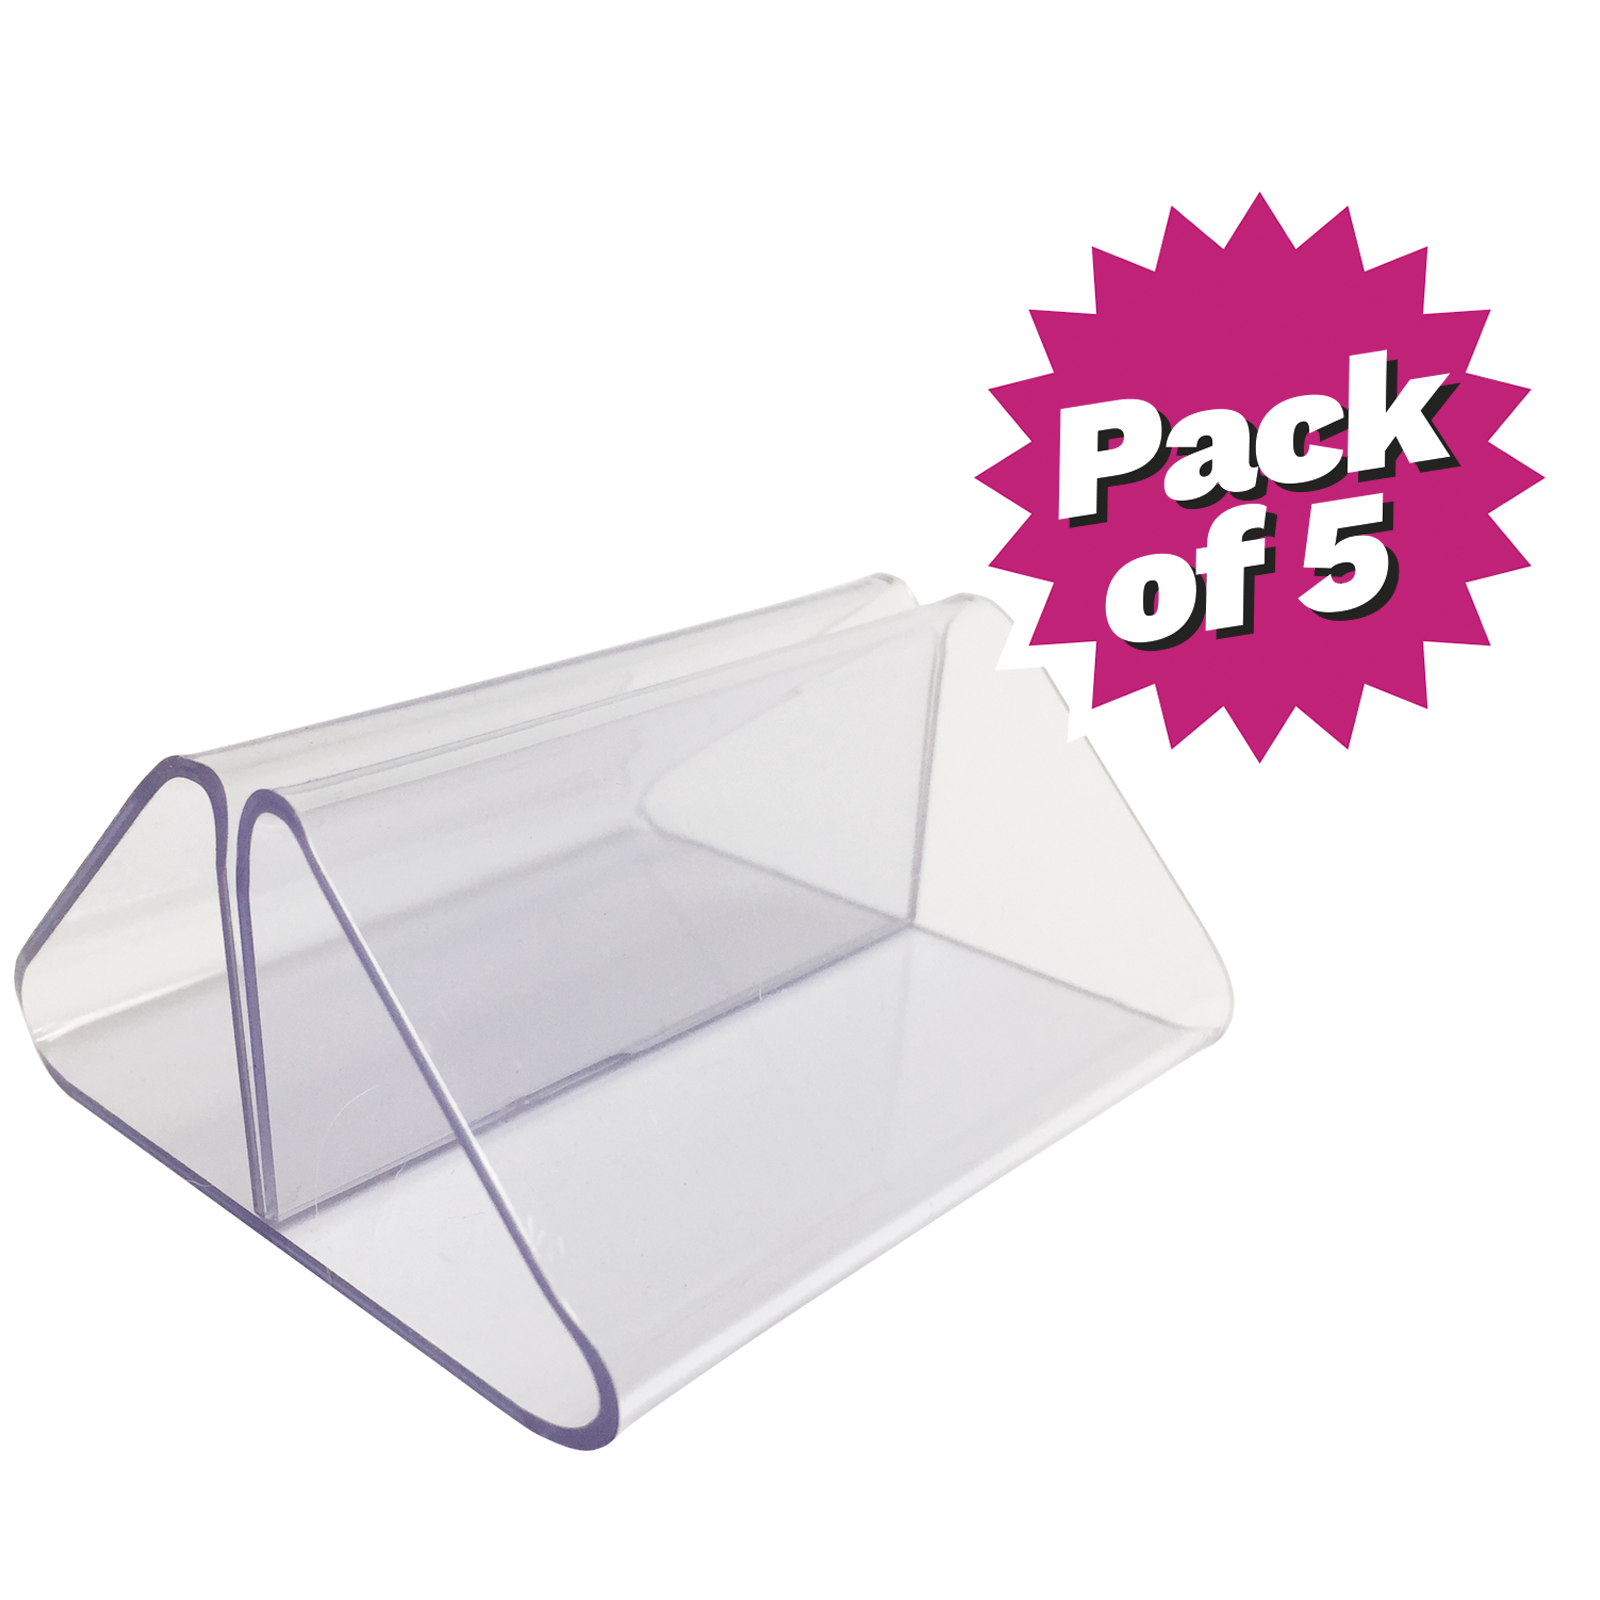 Clear PVC Card Holder - Pack of 5